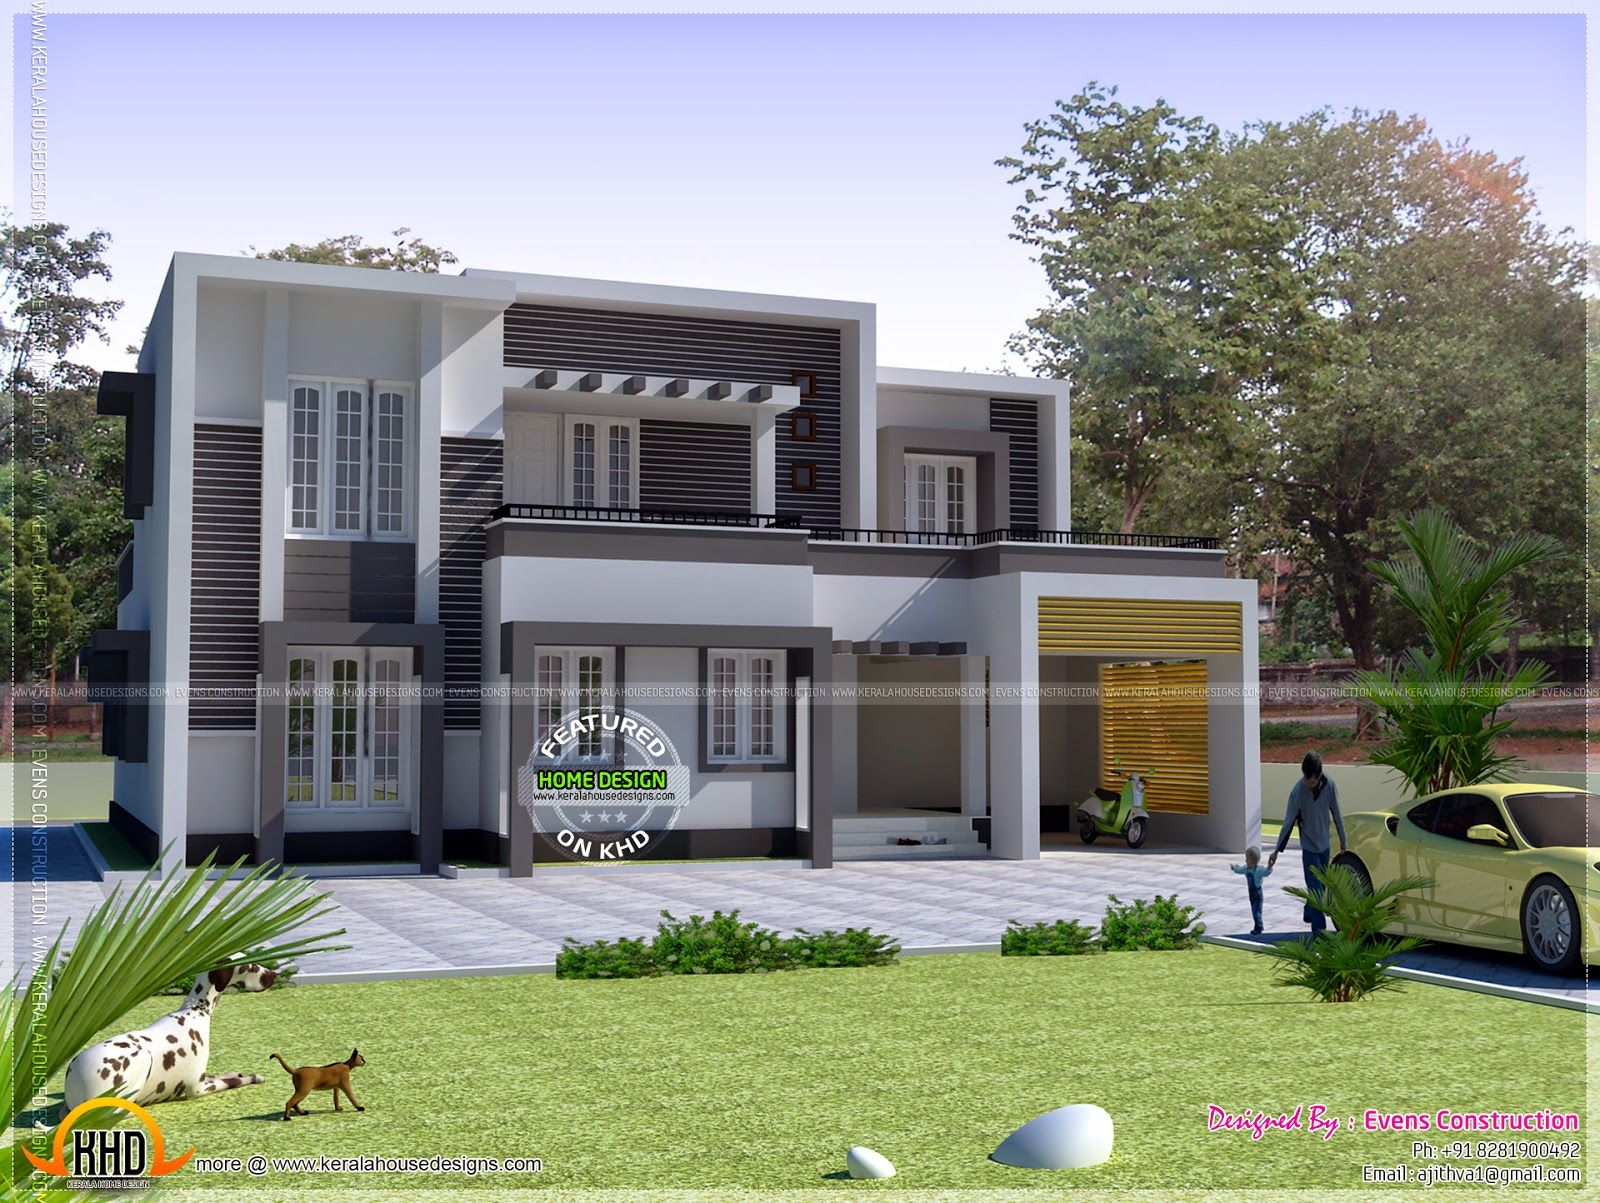 Second Story Addition Flat Roof Google Search Kerala House Design Simple House Design Simple House